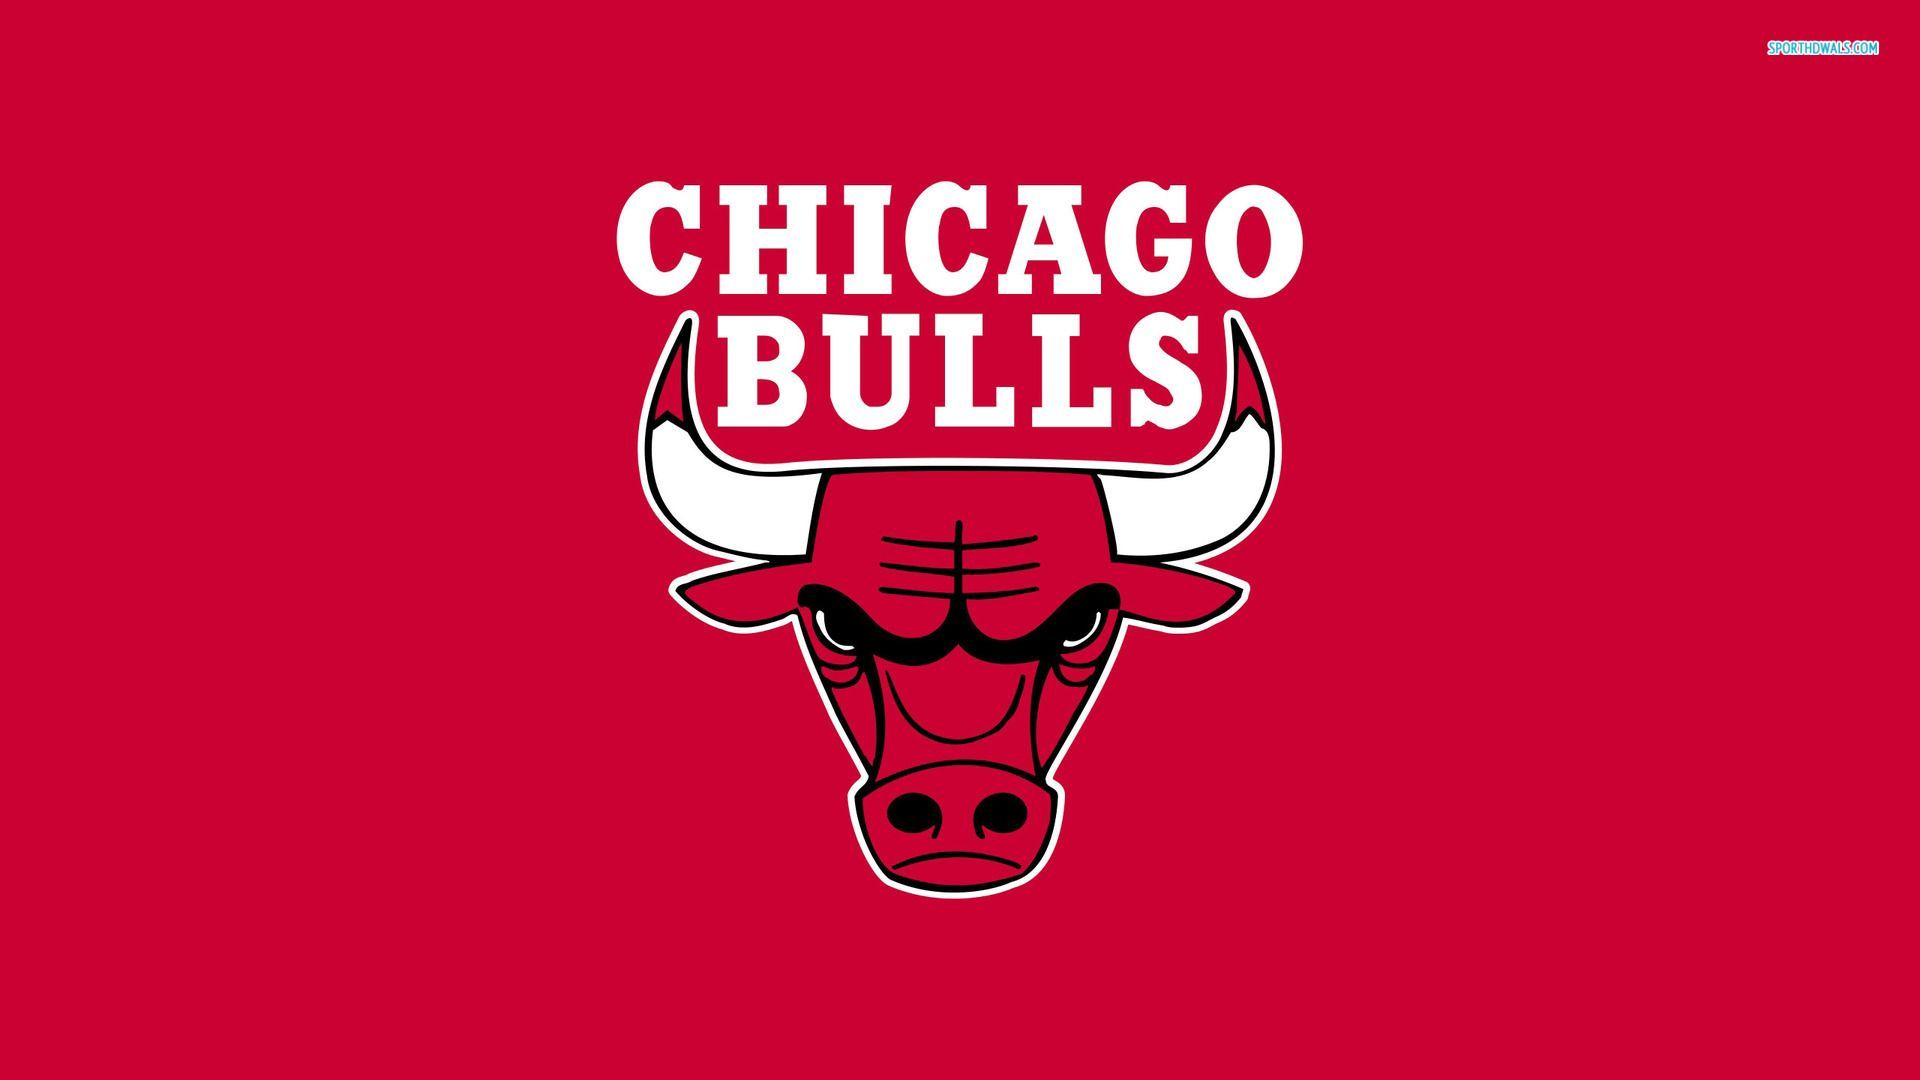 Chicago bulls wallpapers hd wallpaper hd wallpapers pinterest chicago bulls wallpapers hd wallpaper voltagebd Choice Image